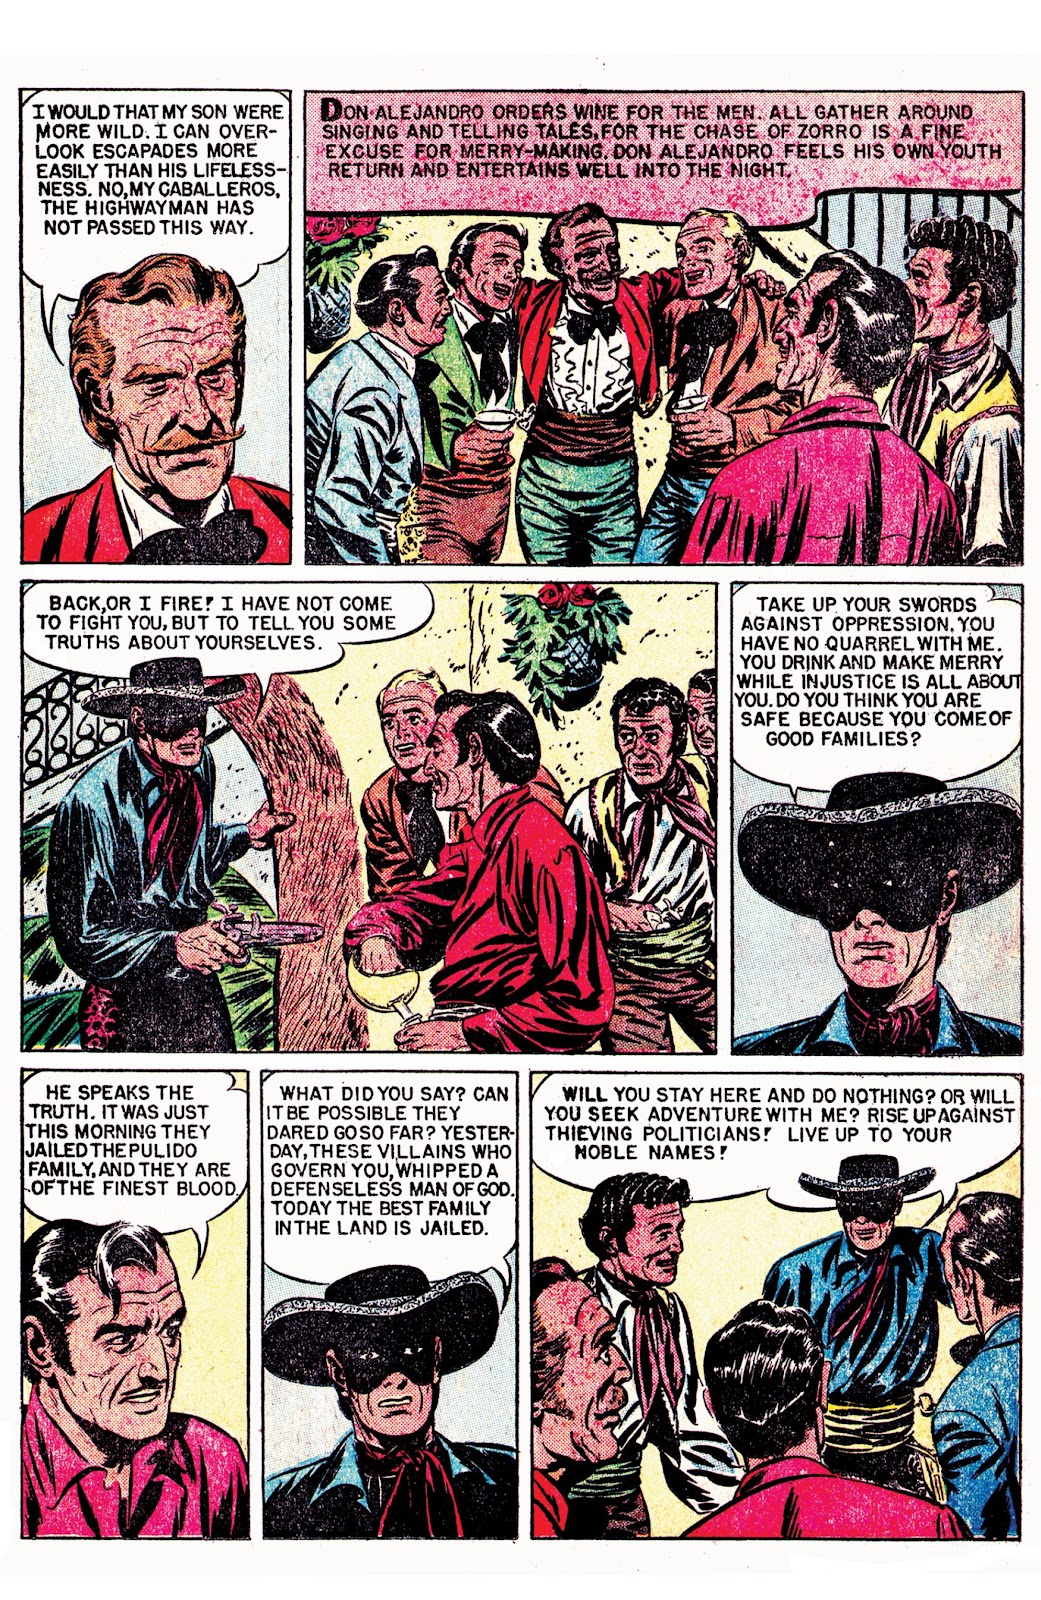 Read online AM Archives: The Mark of Zorro #1 1949 Dell Edition comic -  Issue #1 1949 Dell Edition Full - 26